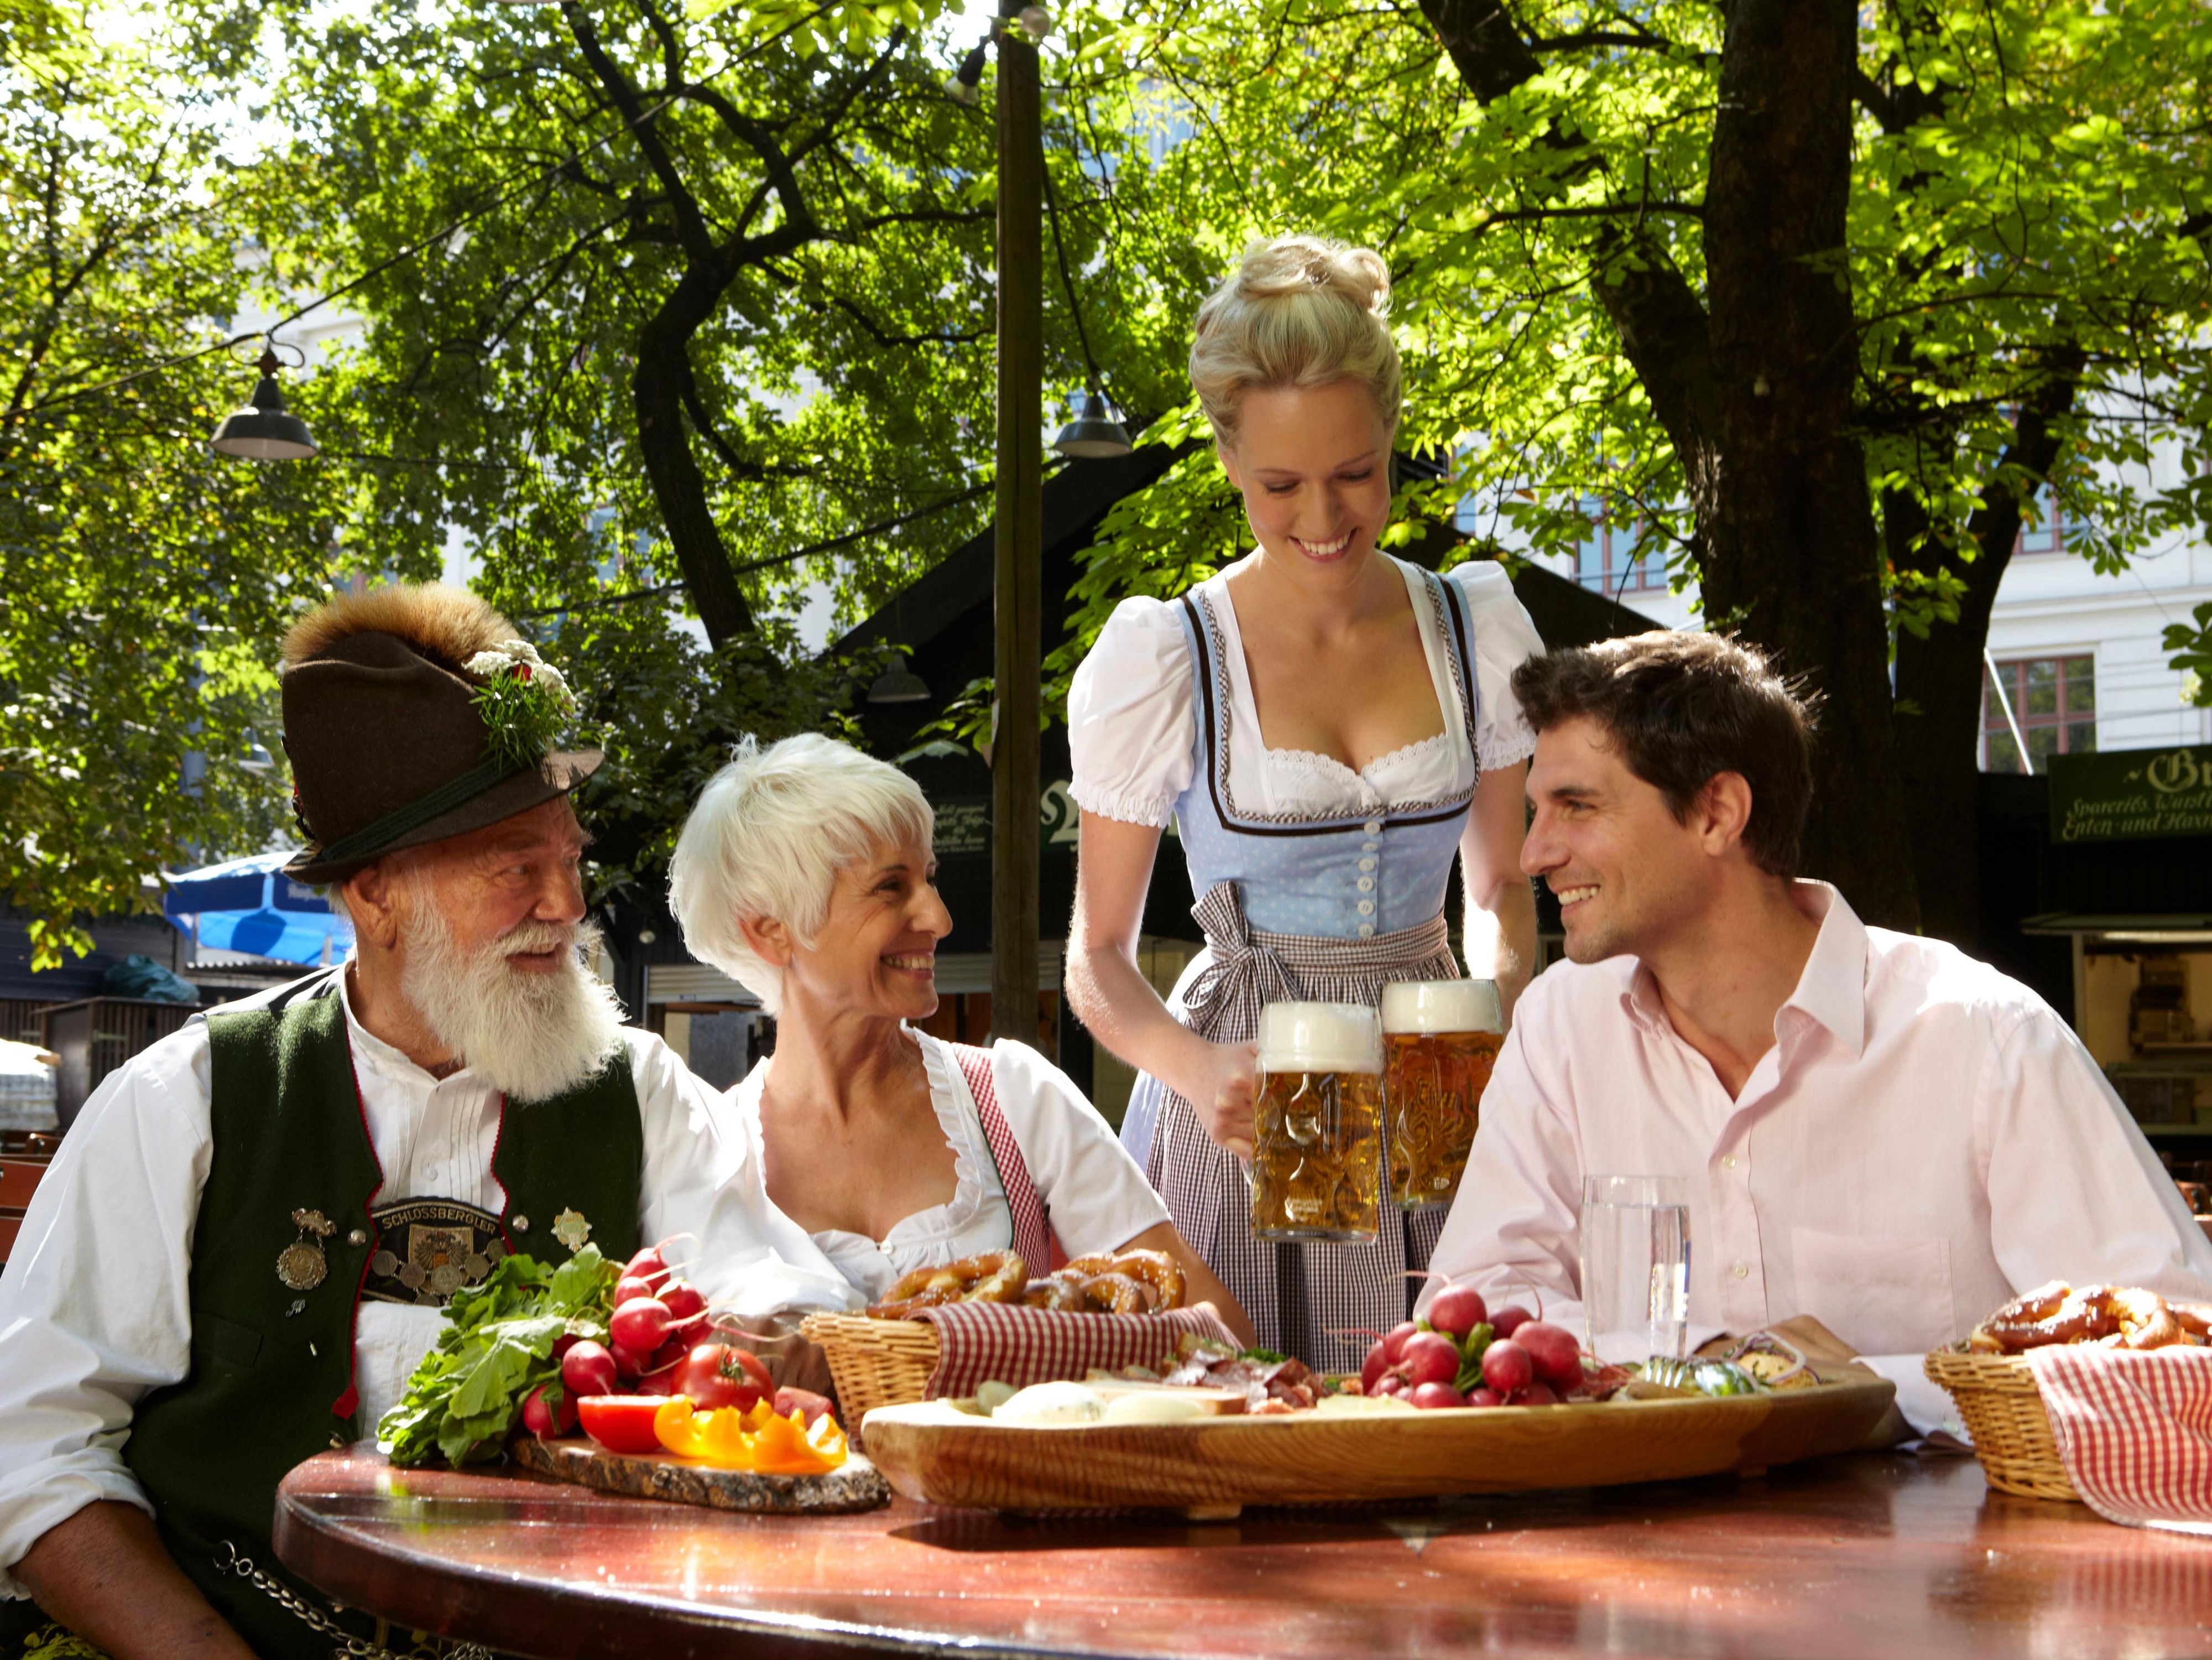 Tourismus Munich - Bavarian culture in a beergarden.